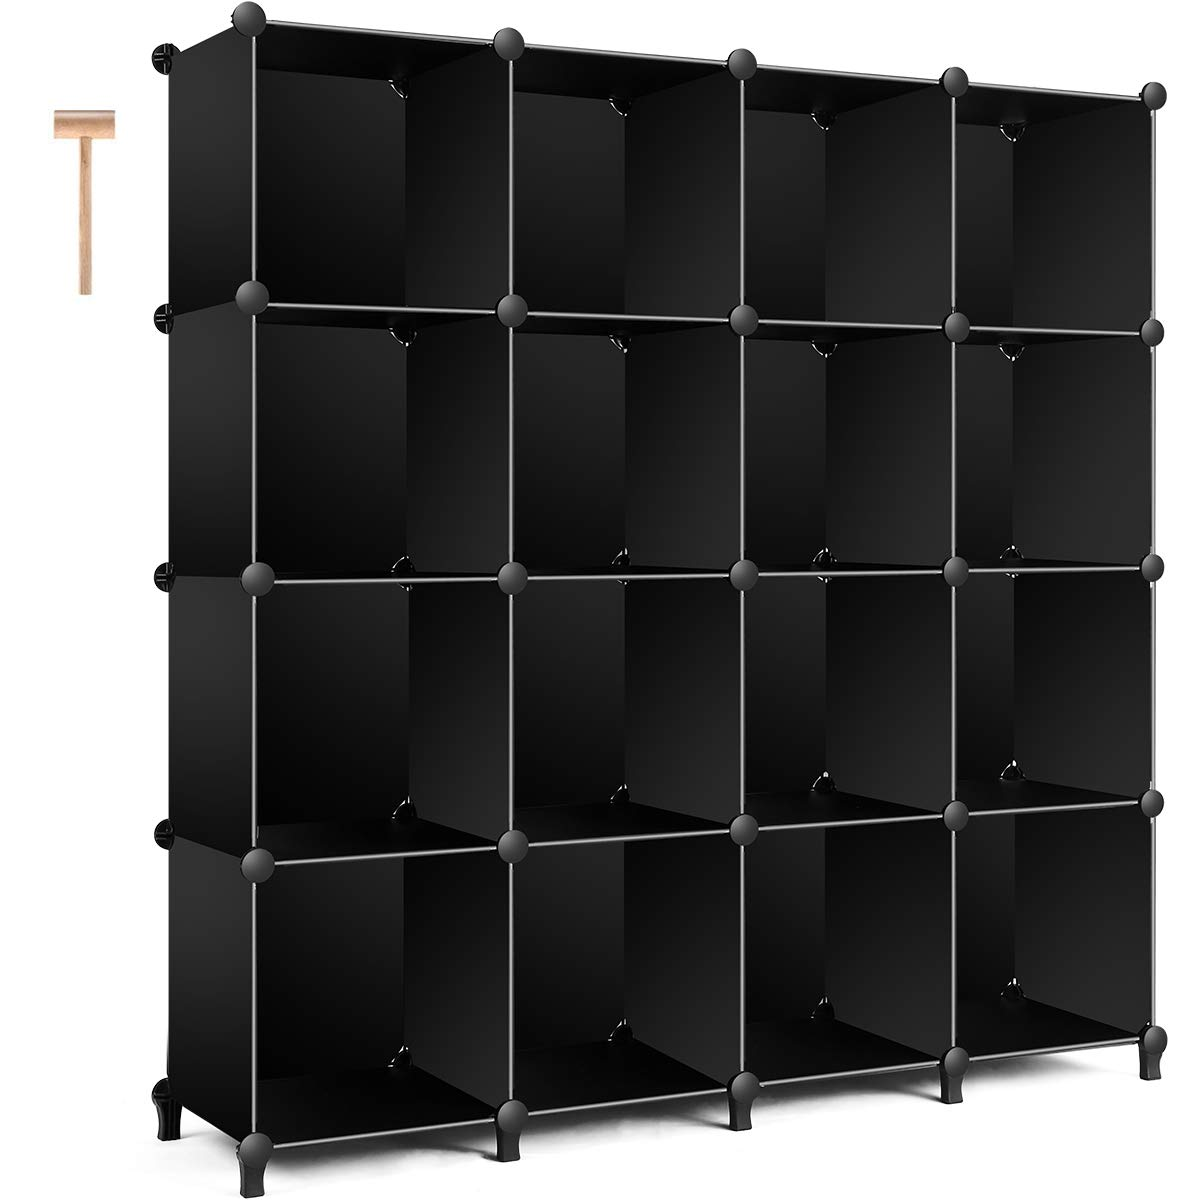 TomCare Cube Storage 16-Cube Bookshelf Storage Shelves Closet Organizer Shelf Cube Organizer Plastic Book Shelf Bookcase DIY Closet Cabinet Organizers Shelving for Bedroom Office Living Room, Black